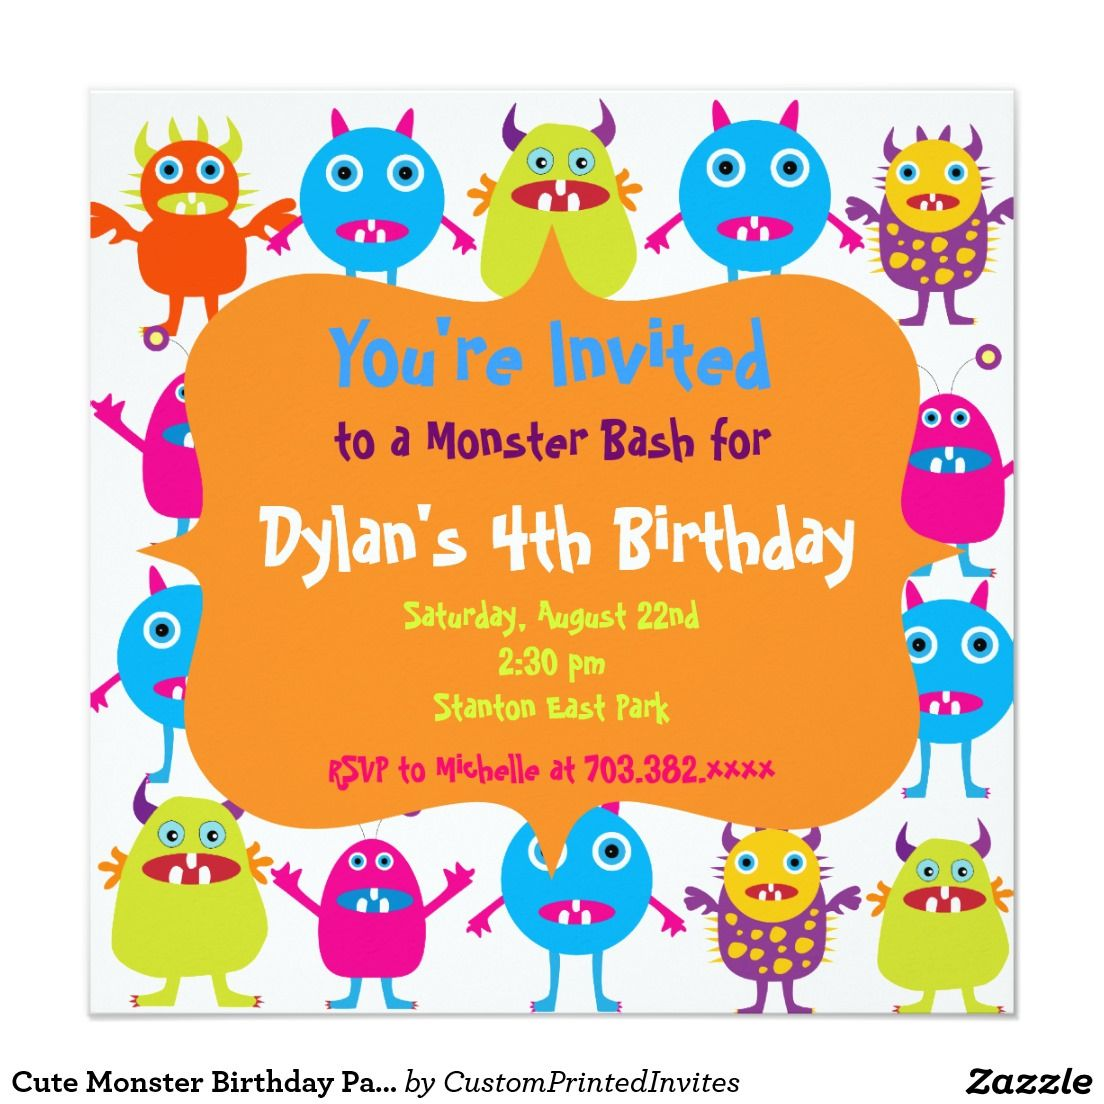 Cute Monster Birthday Party Invitation Templates 5 25 Square Card